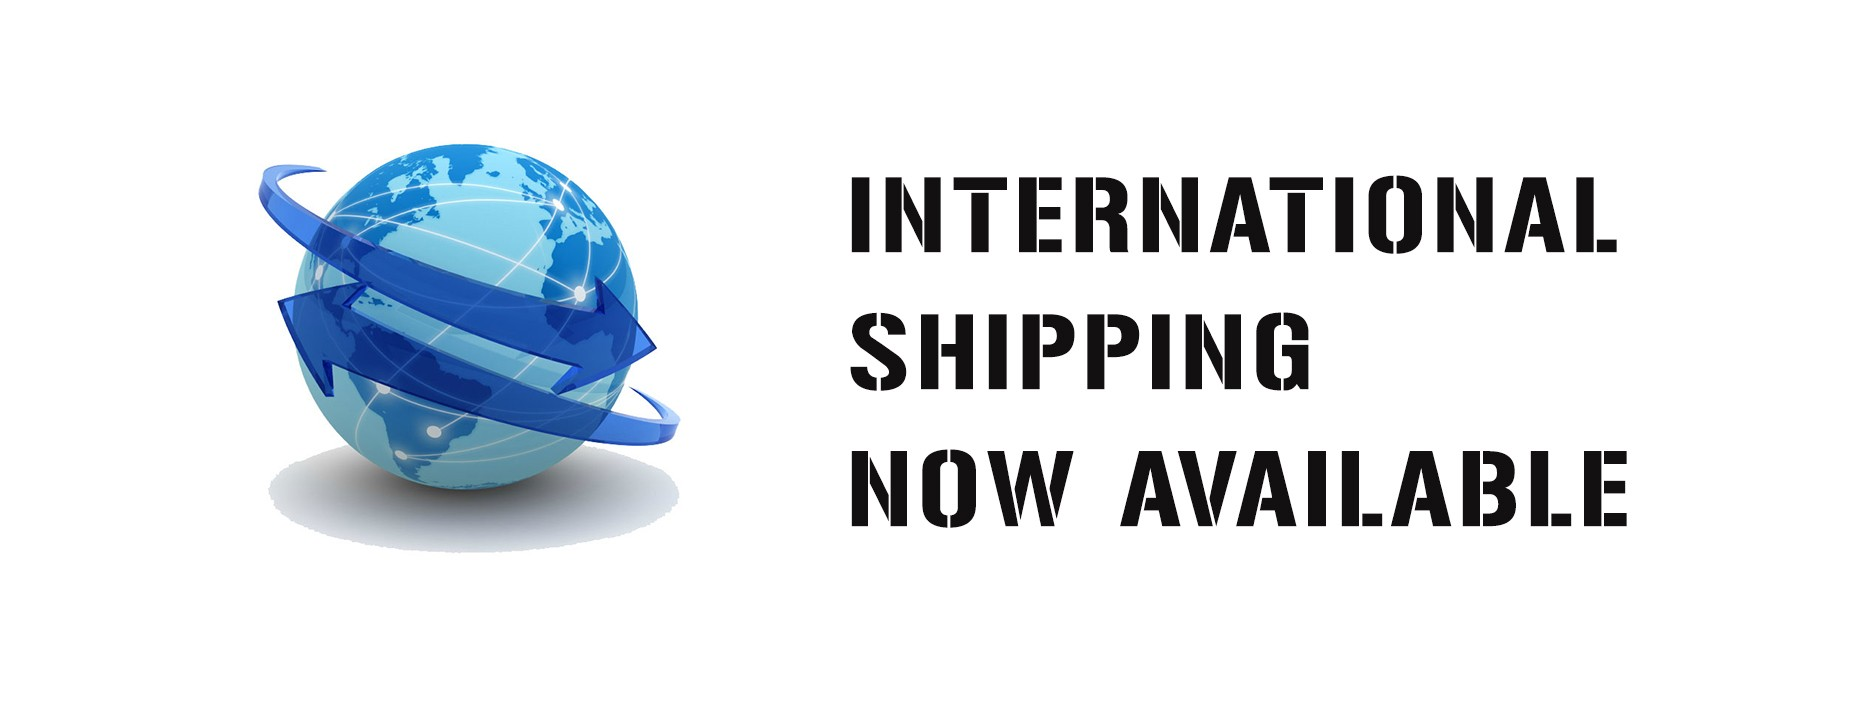 Madpax_InternationalShipping_01